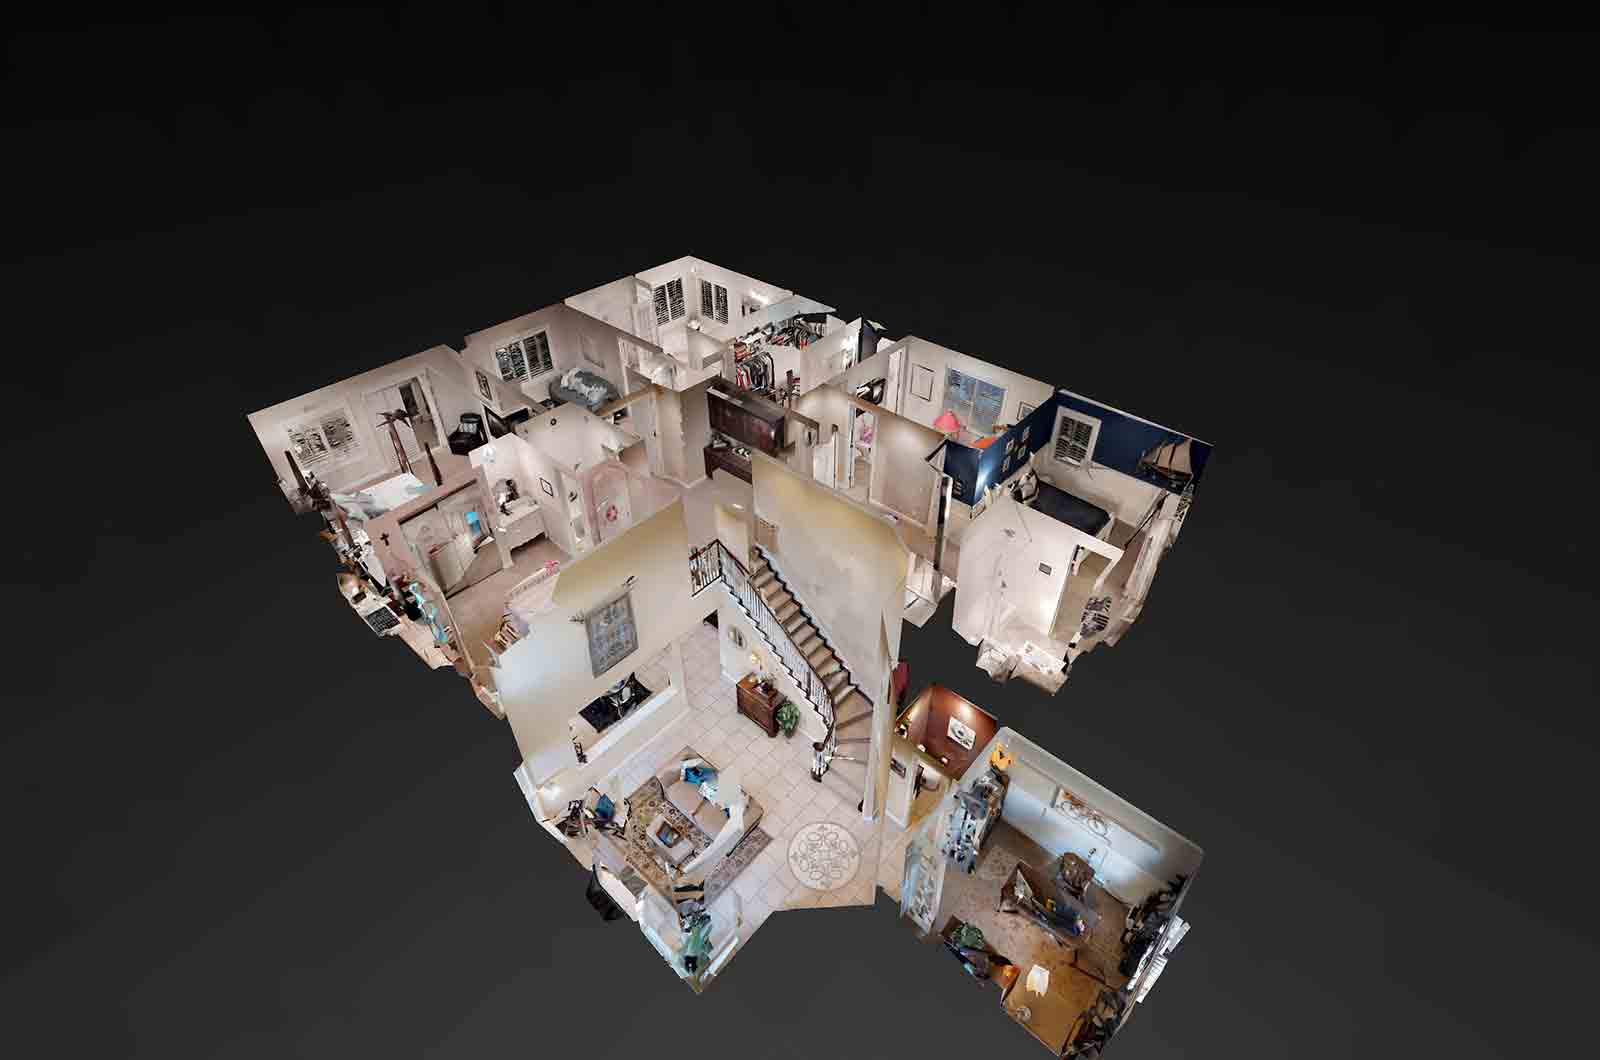 Immersive-3D-Tours-_-Matterport-3D-Tours-Orange-County